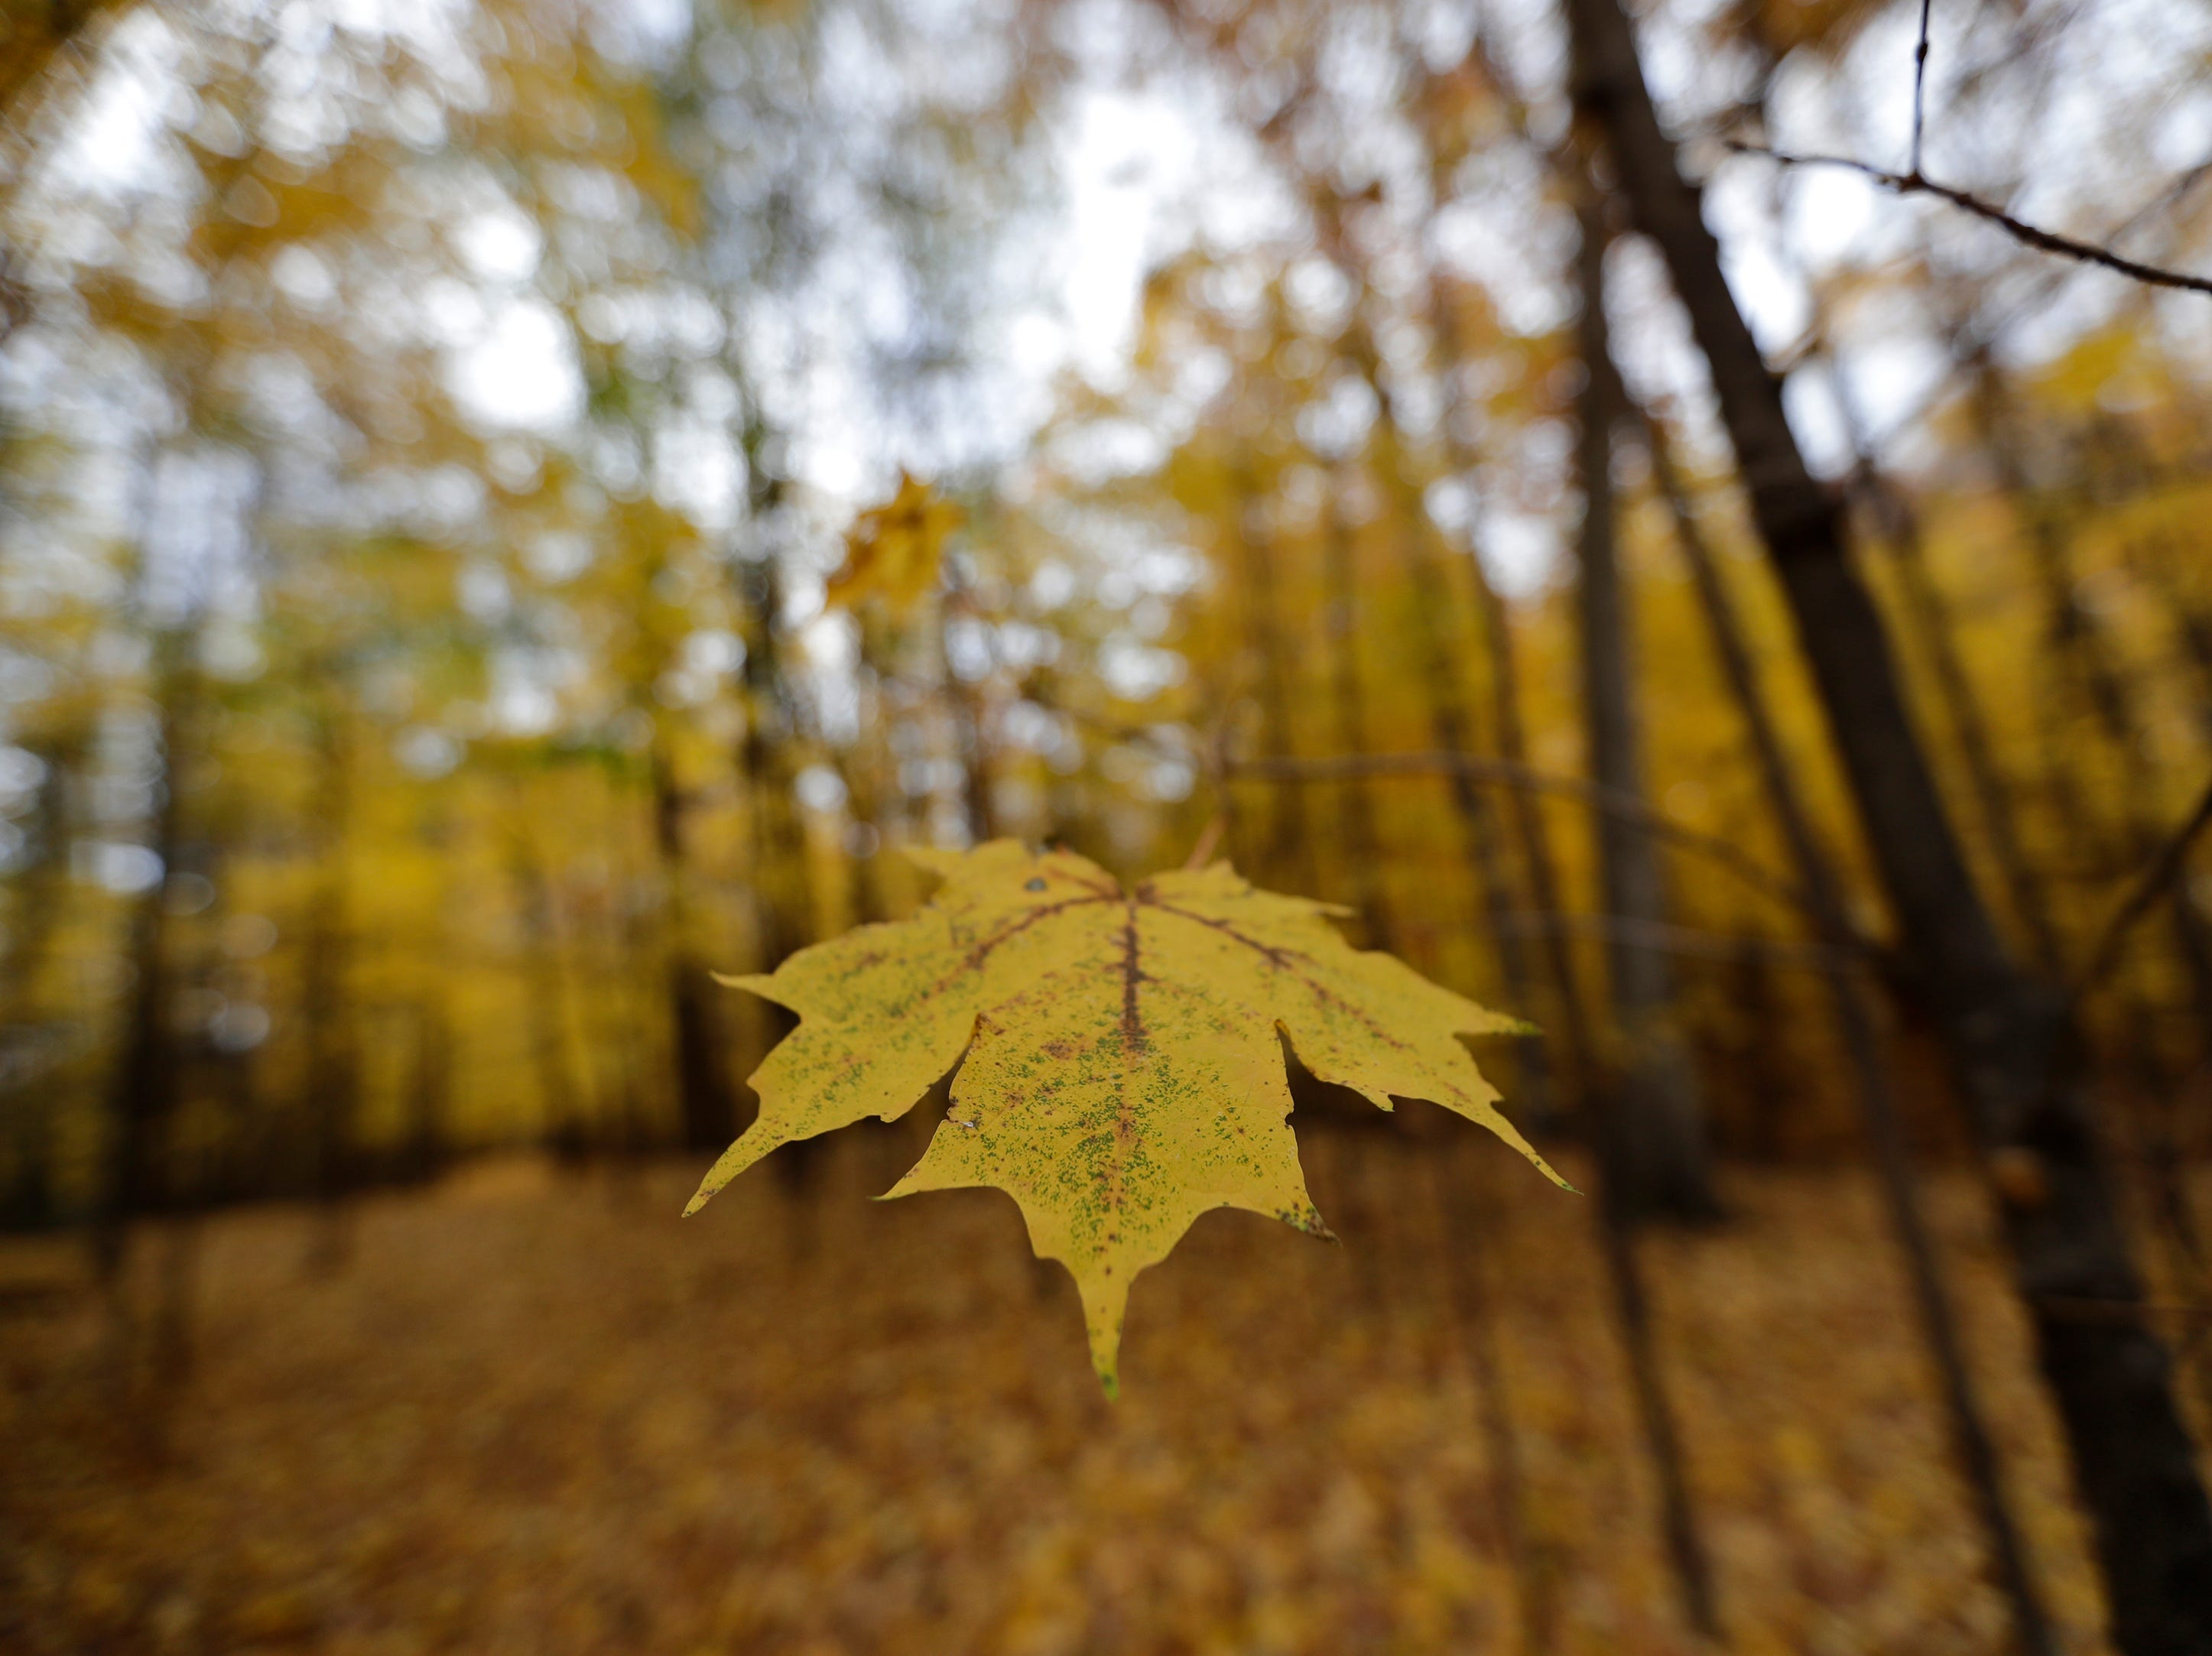 A leaf clings to the end of a branch Monday, October 29, 2018, at Plamann Park in Appleton, Wis. 